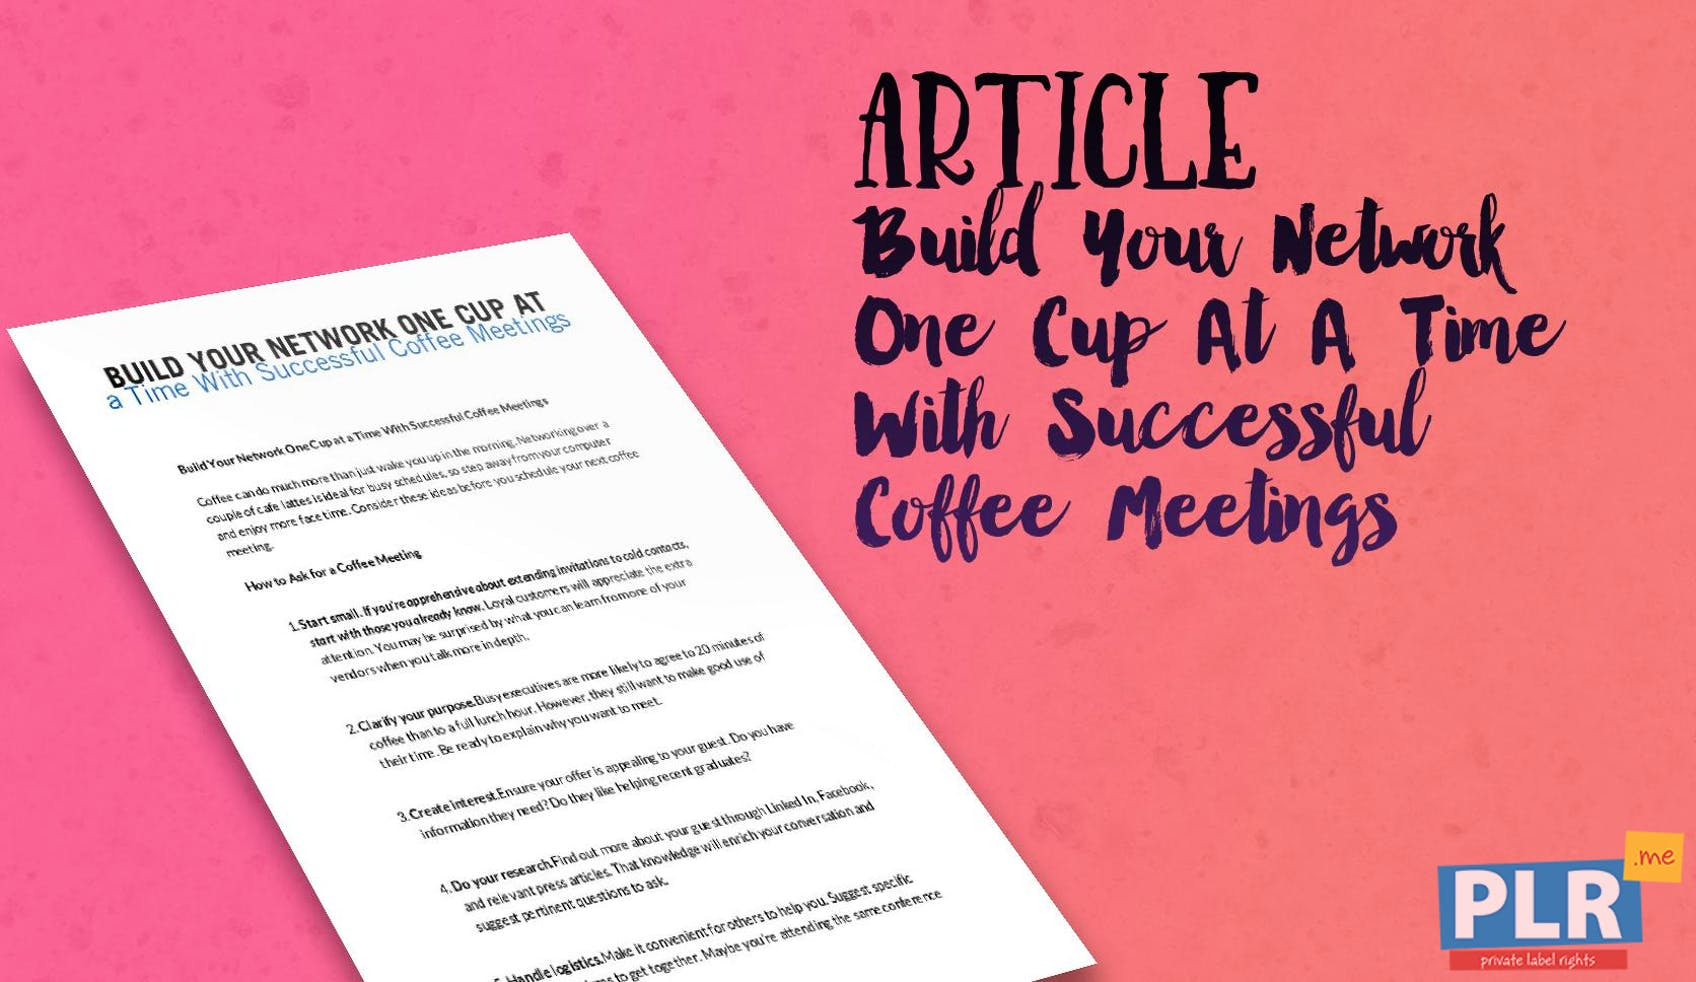 Build Your Network One Cup At A Time With Successful Coffee Meetings